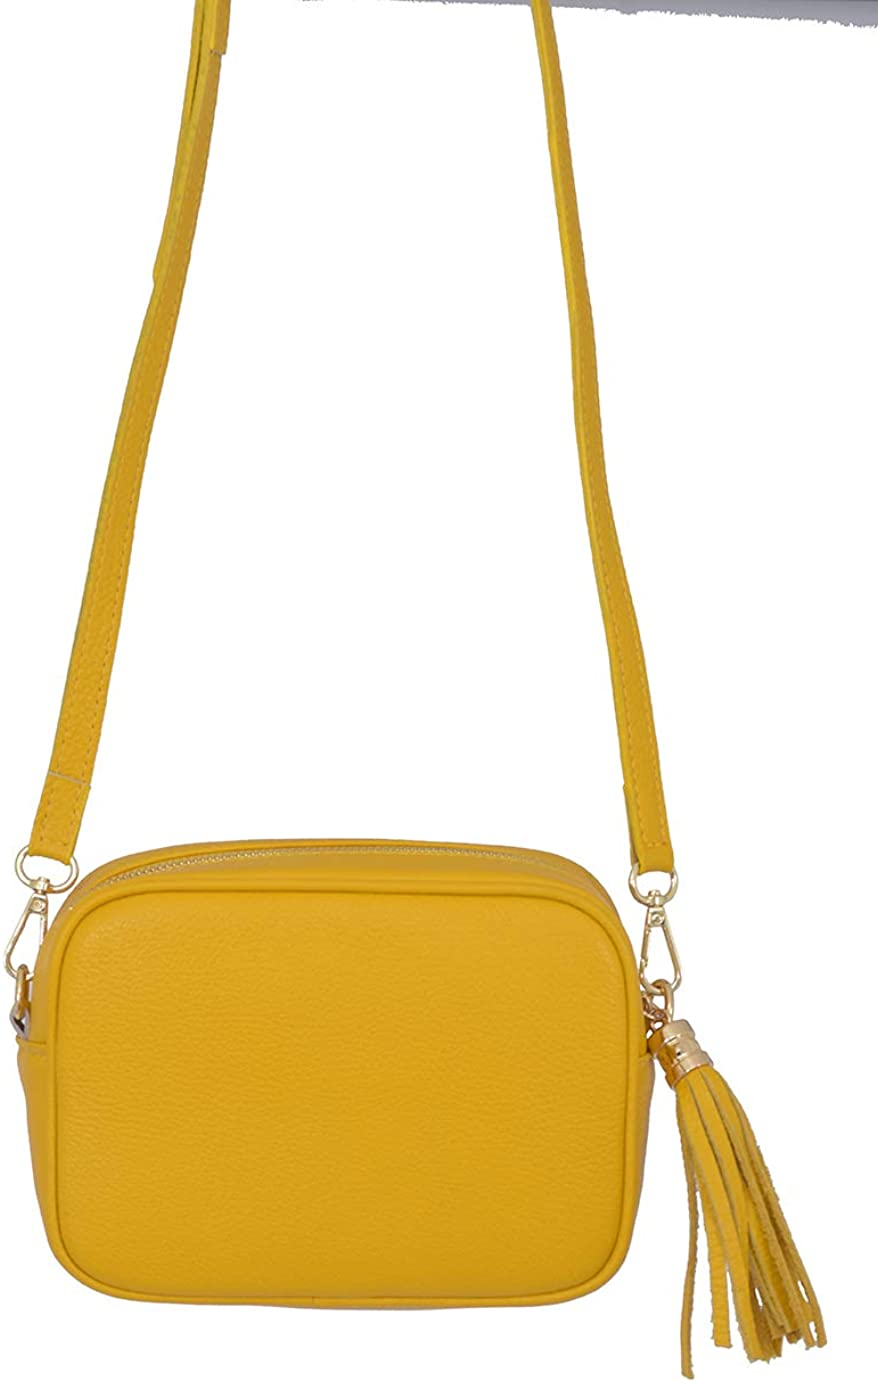 A to Z Leather Borsa da donna a tracolla morbida e compatta in vera pelle per donna con nappa in pelle e hardware dorato Giallo